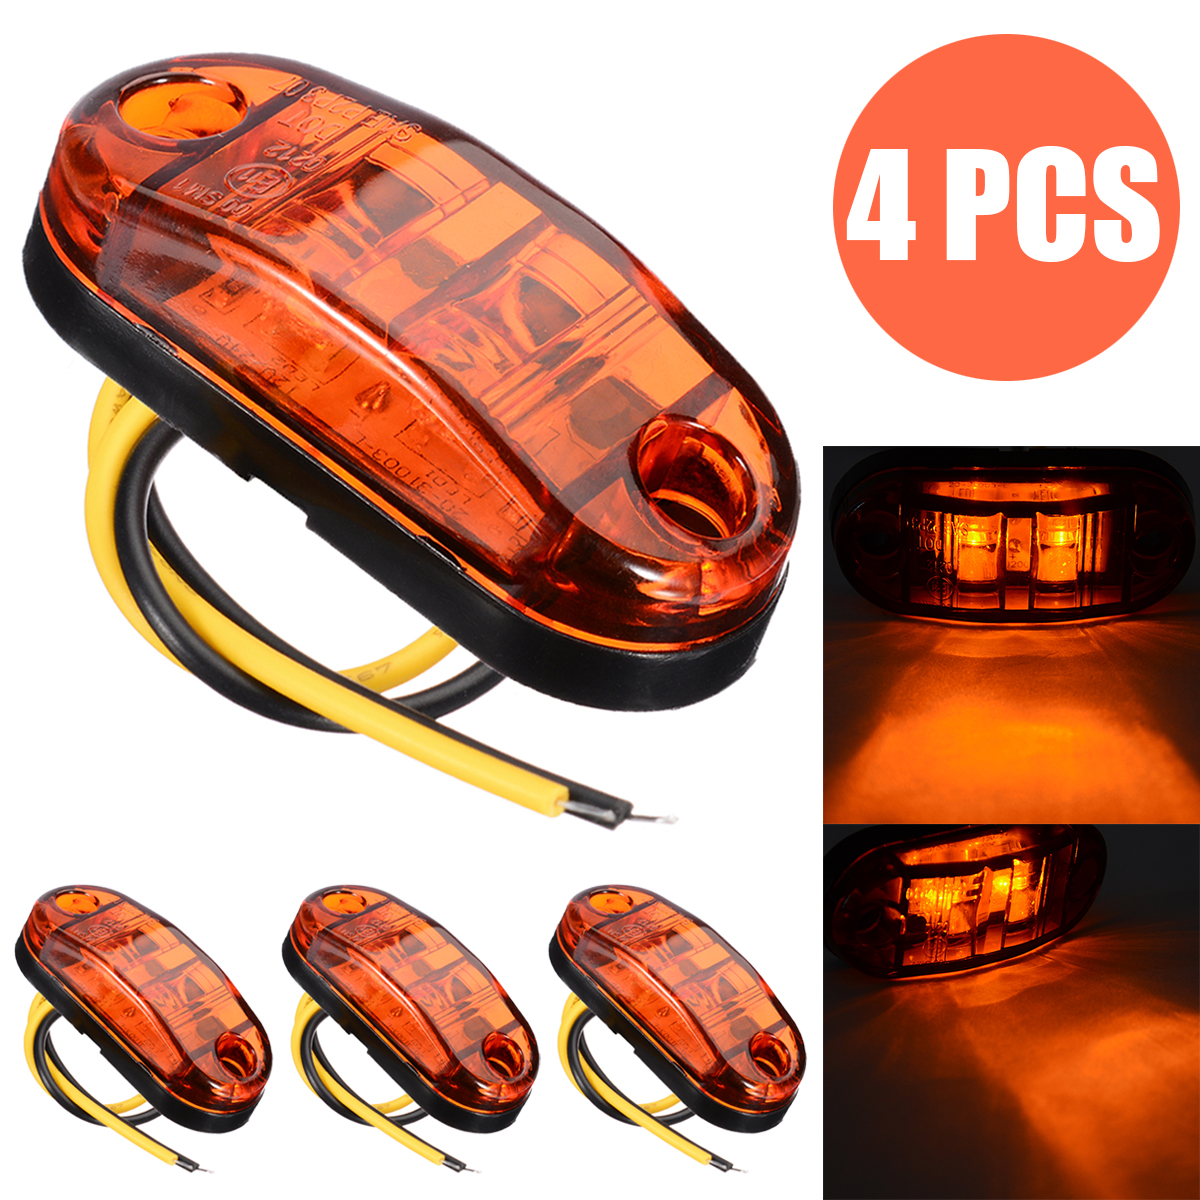 4pcs/set Amber 2LED Light 12V 24V Oval Clearance Car Trailer Truck LED Side Marker Lamp Bulbs Waterproof